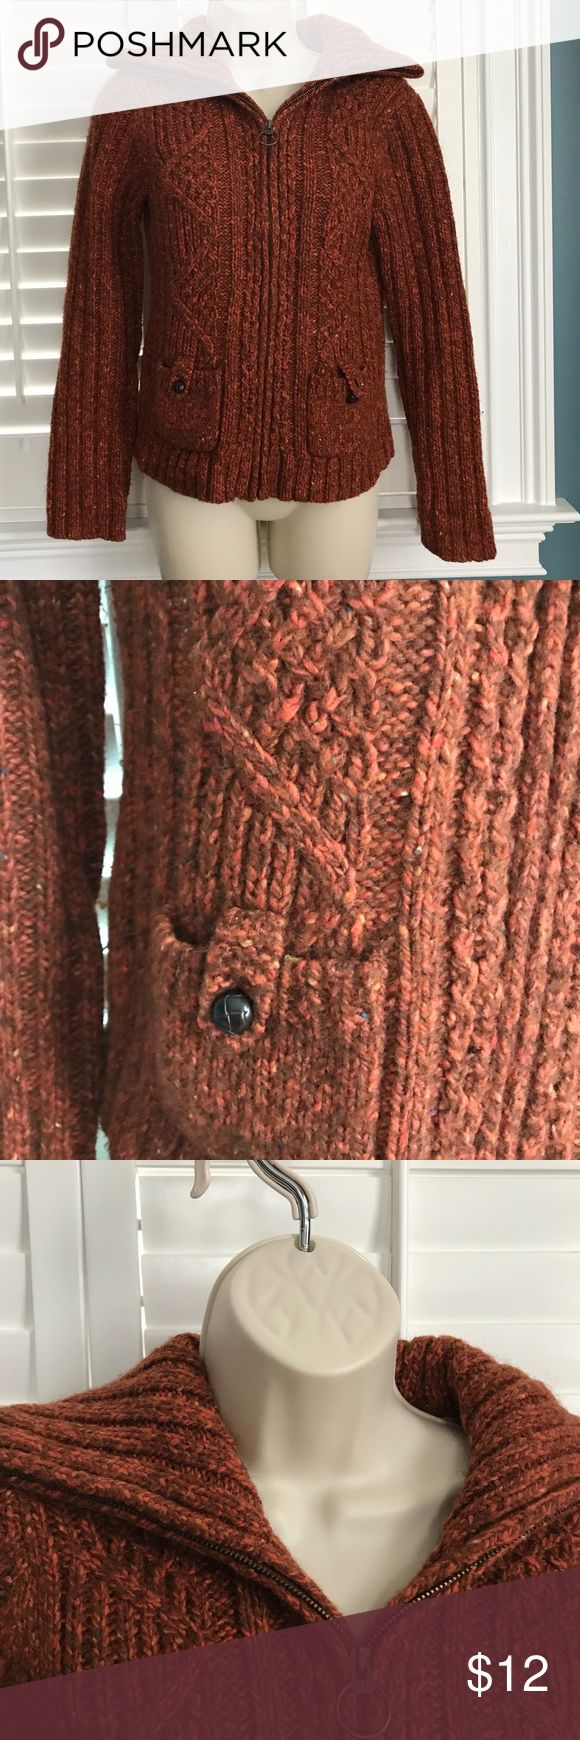 LOFT Burnt Orange Zip Up Cardigan Sweater Excellent condition--heavy knit, full zip, collar LOFT Sweaters Cardigans